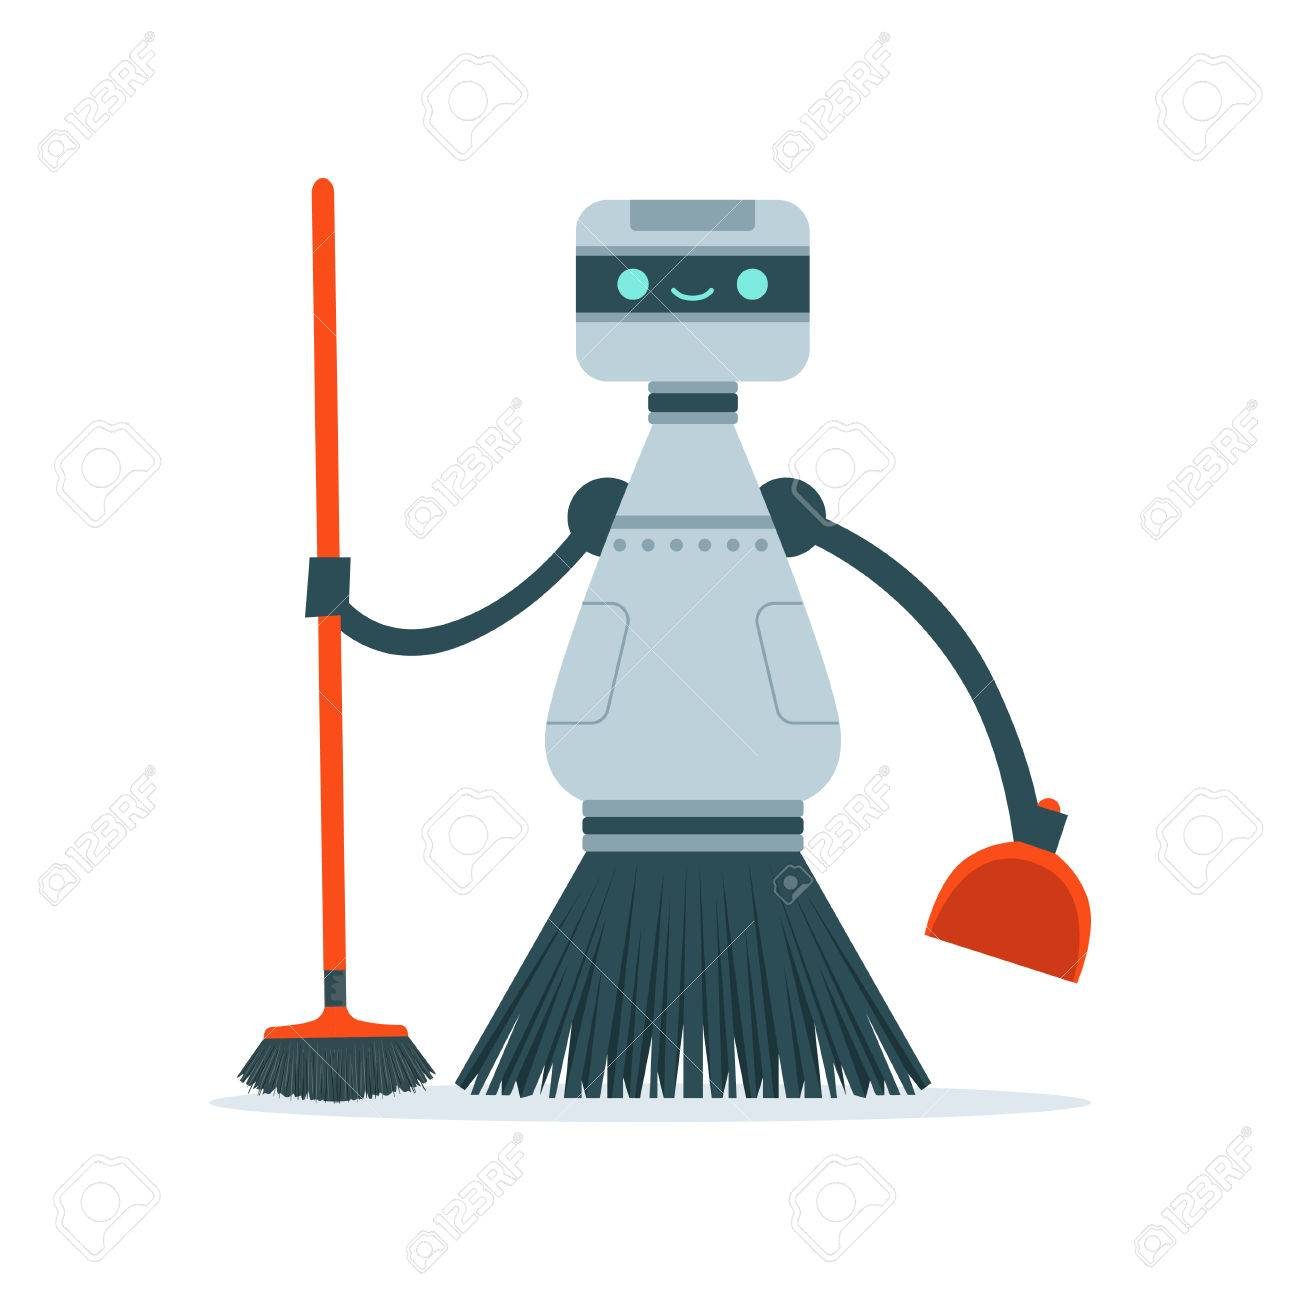 Housemaid cleaning robot character vector Illustration i - 82277486